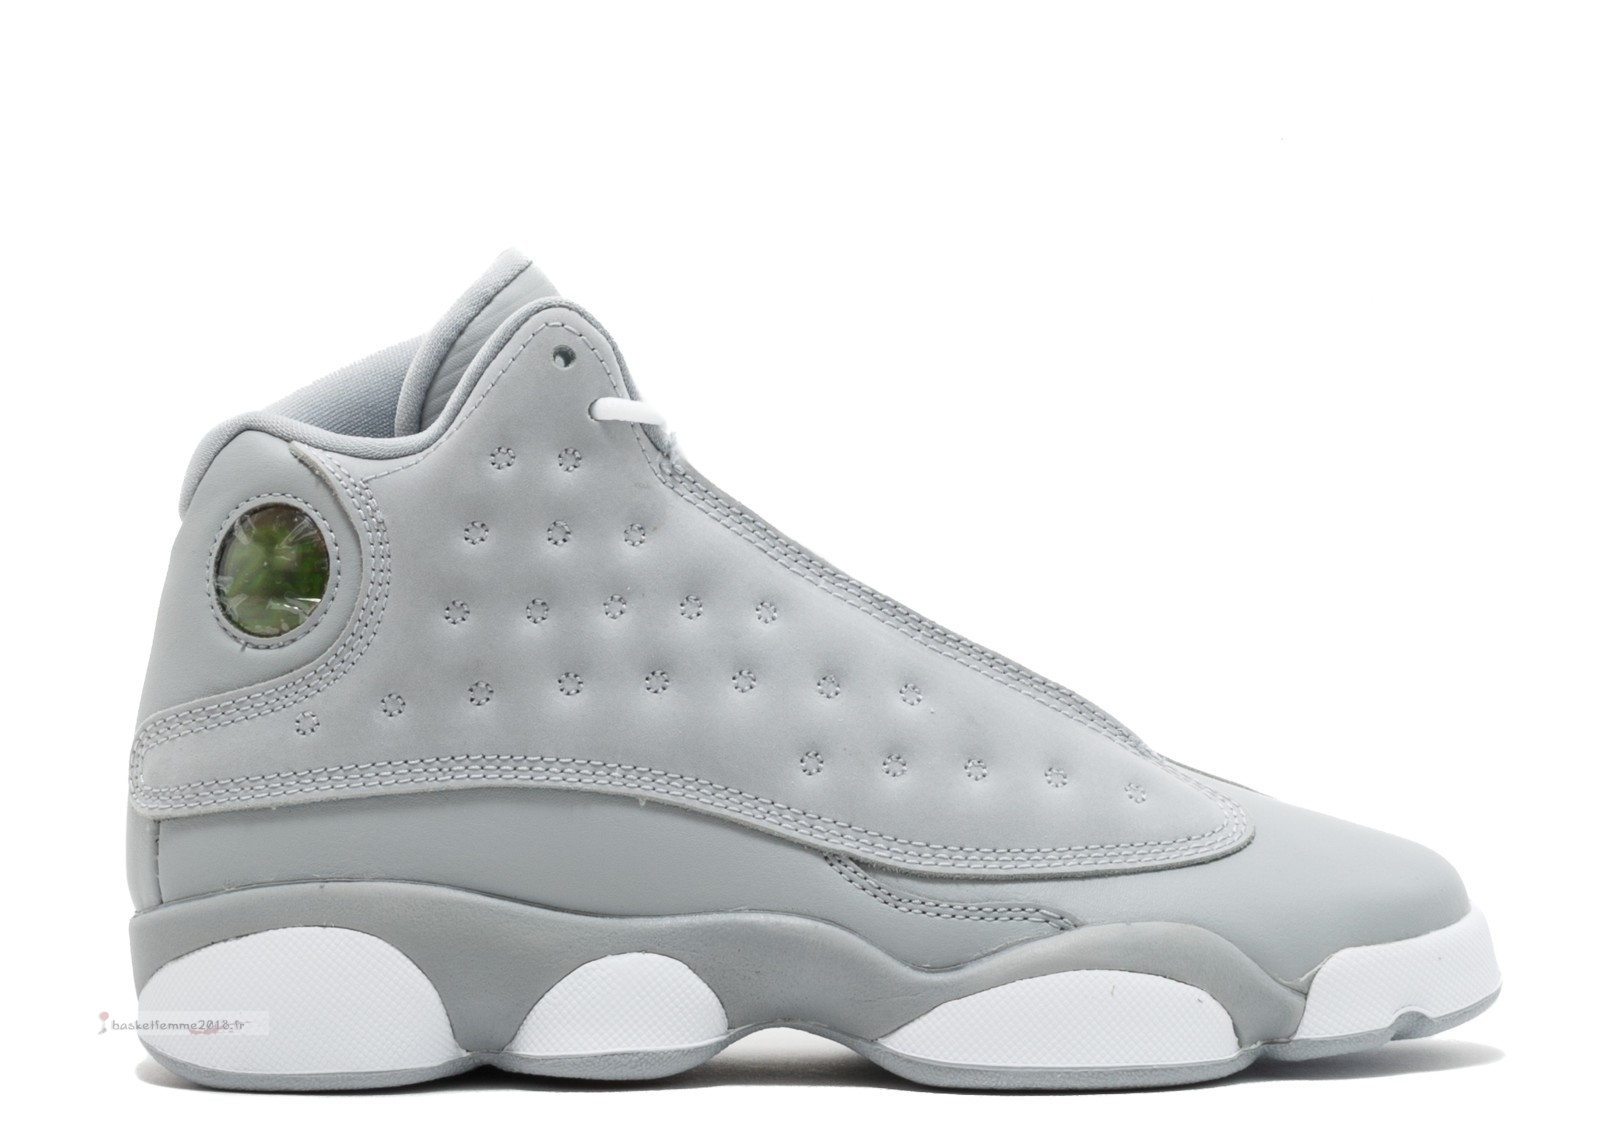 Air Jordan 13 Retro (Gs) Gris (439358-018) Chaussure de Basket